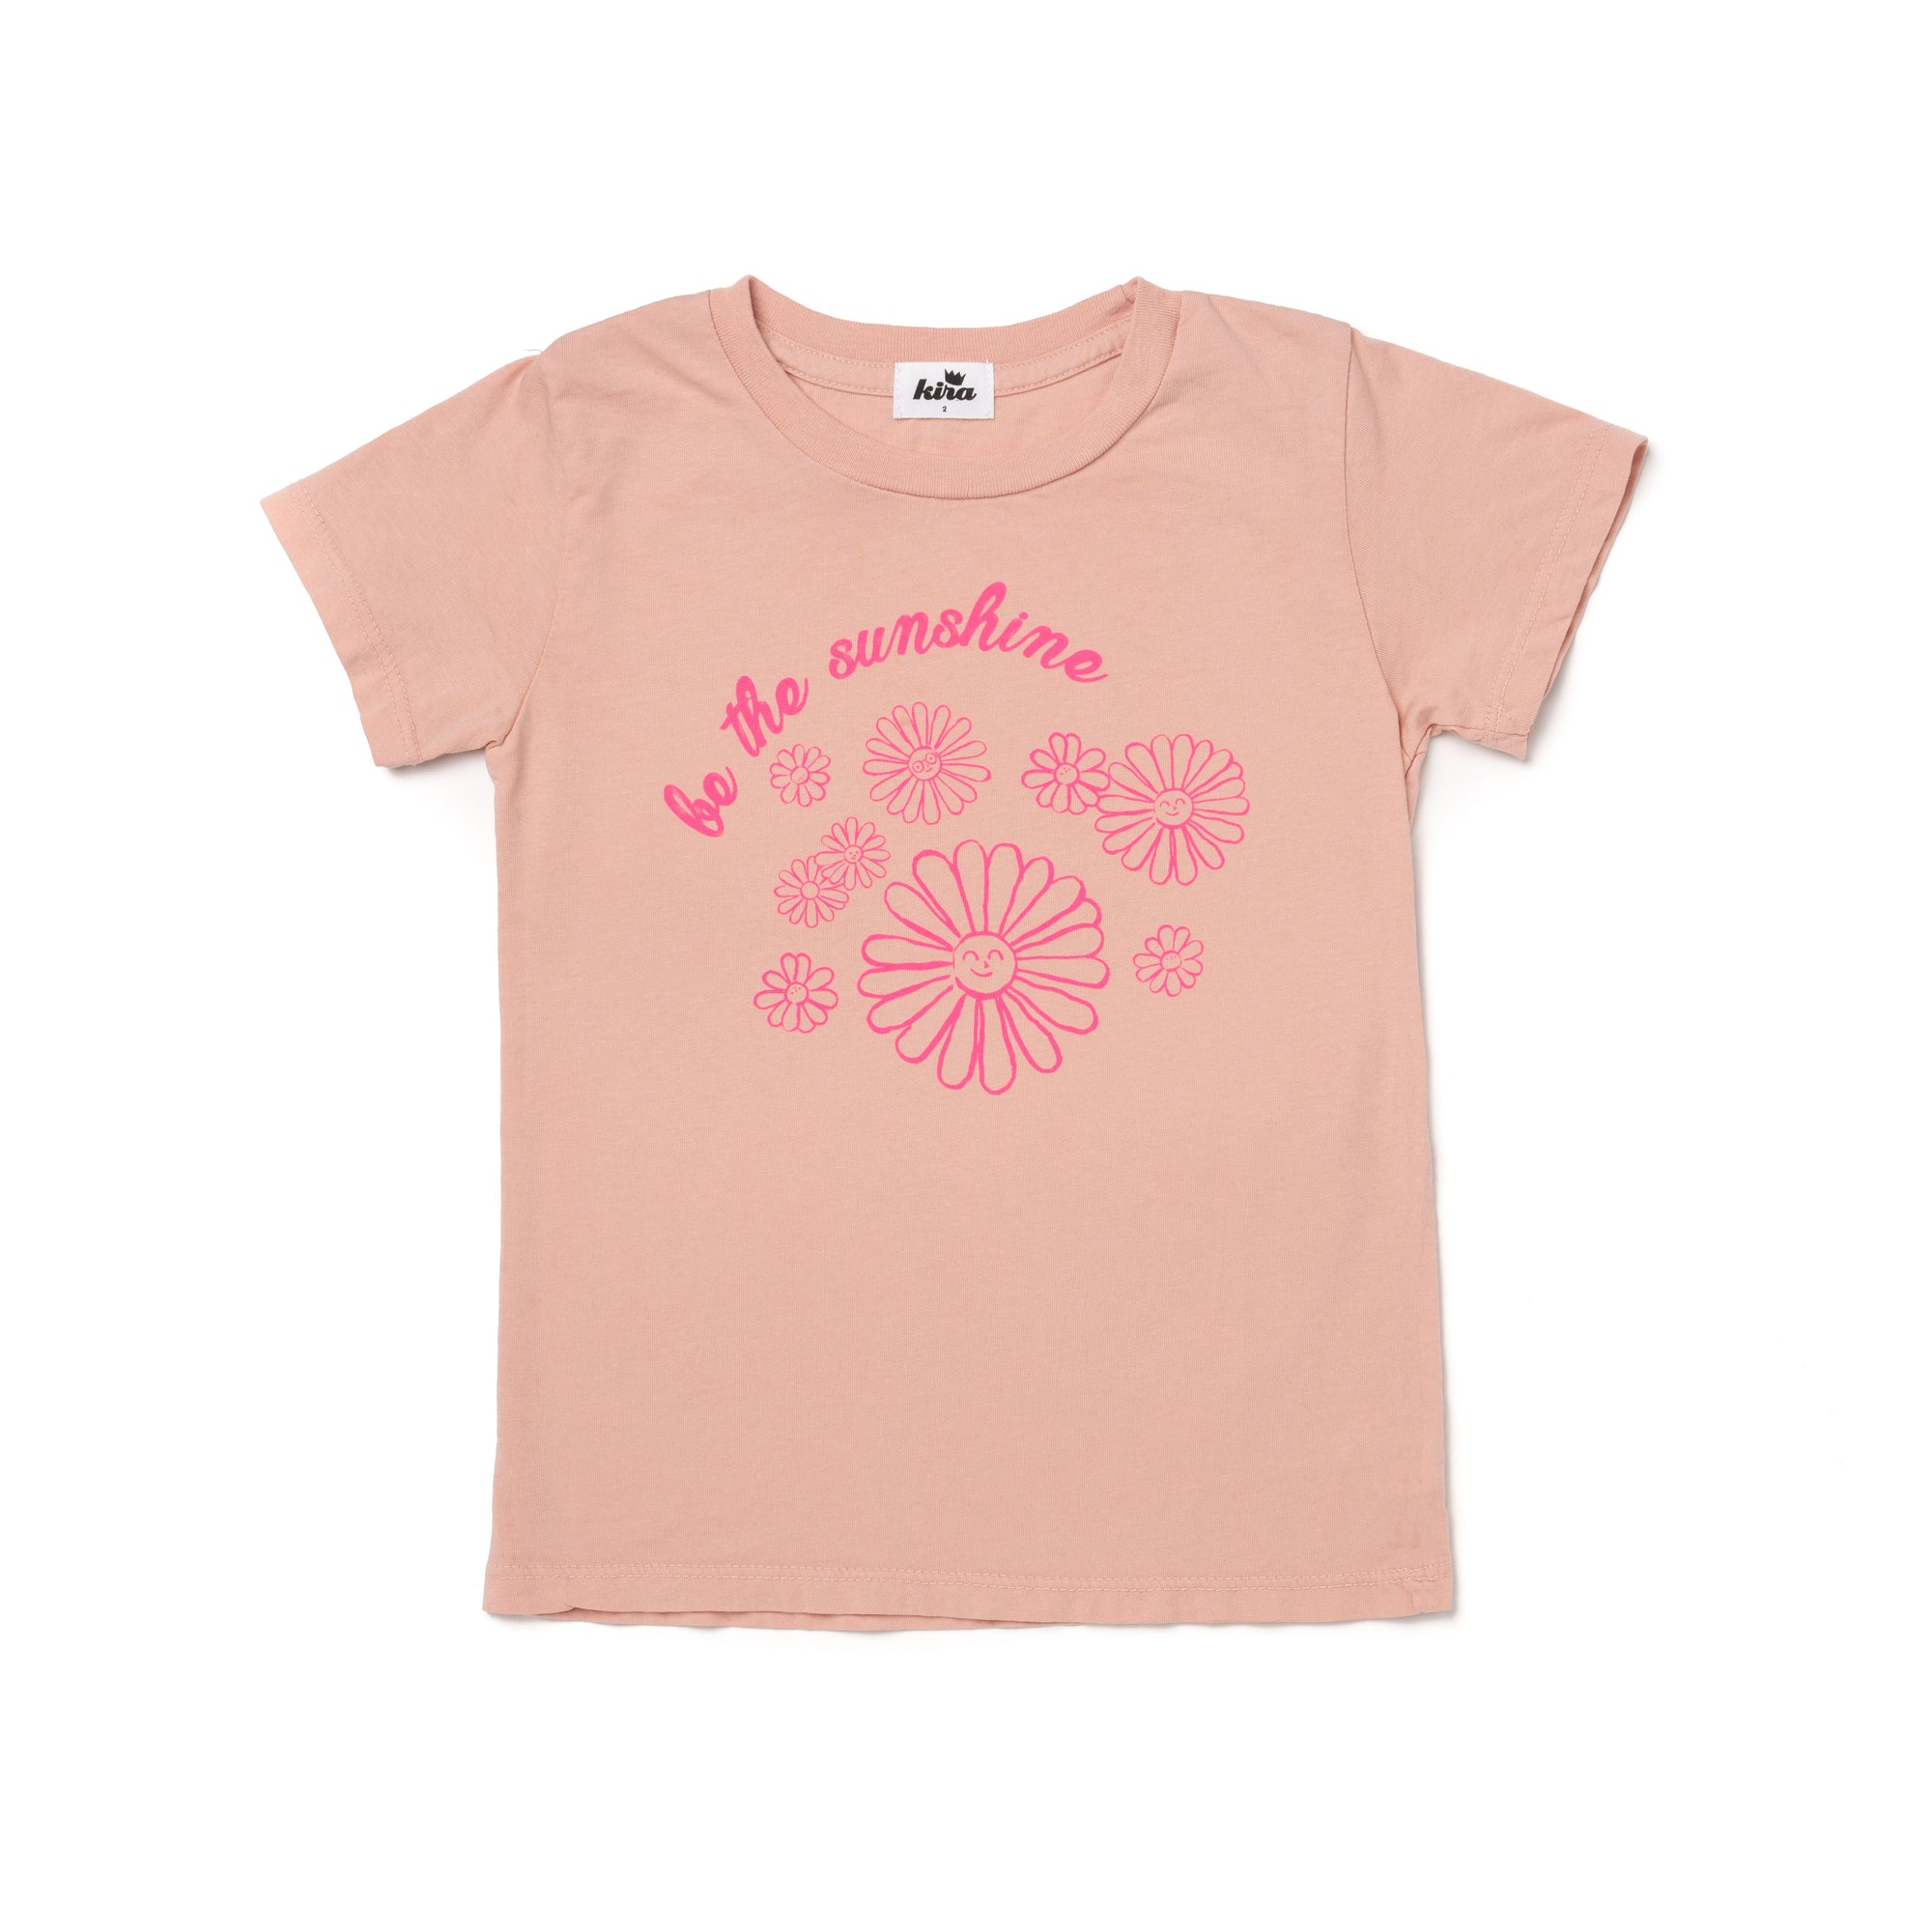 Sunshine Graphic Short Sleeve T-shirt, Blush